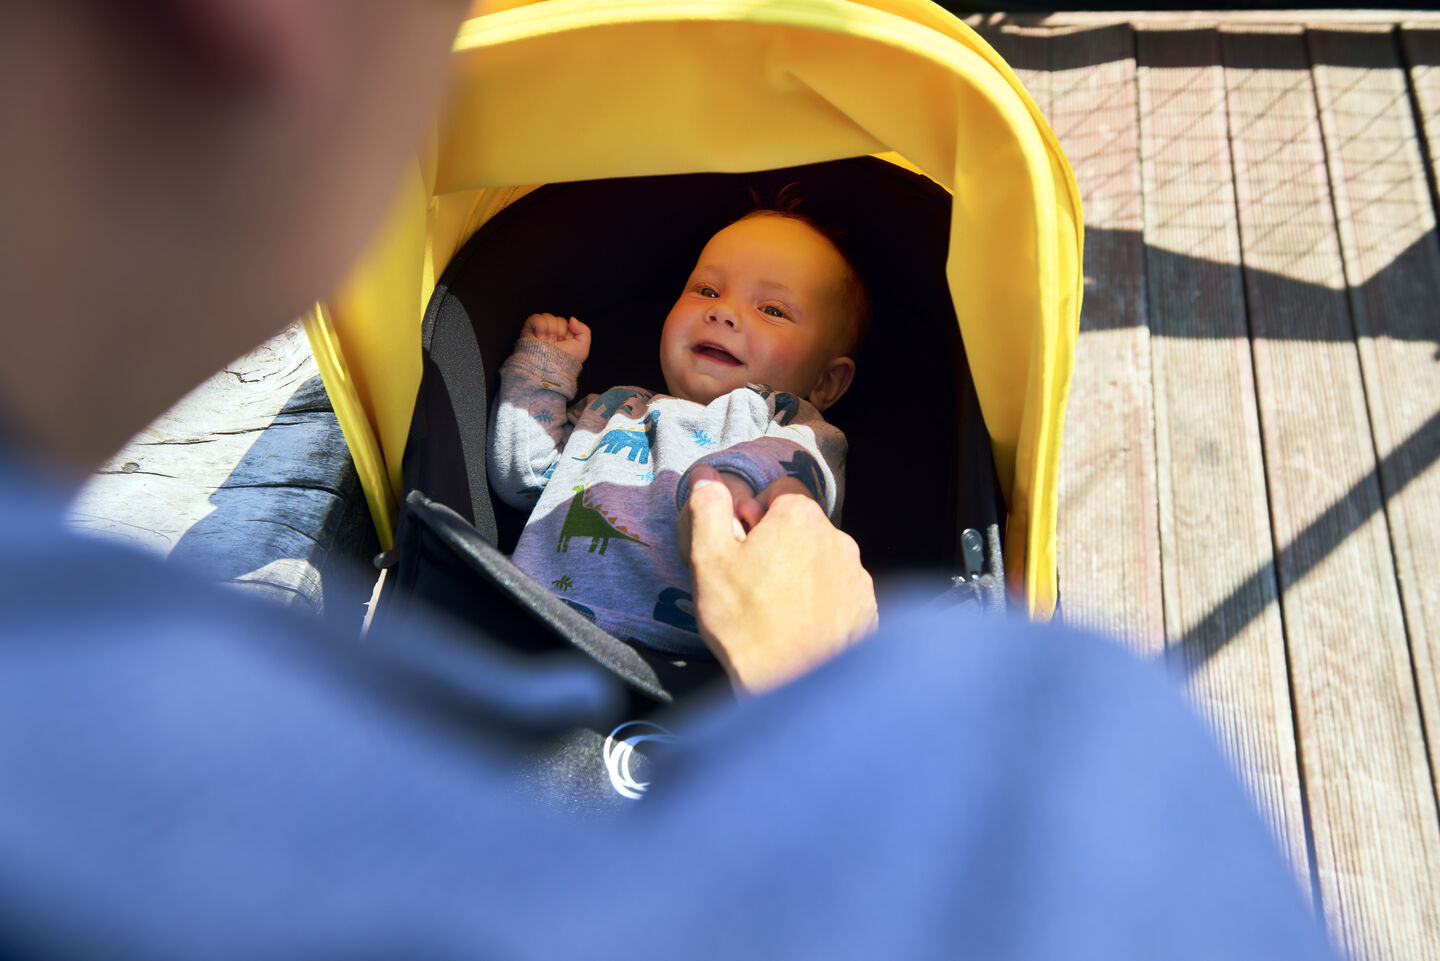 A baby happily smiling in their Bugaboo Bee 6 pram featuring a yellow sun canopy. Bugaboo newborn pram accessories highlight